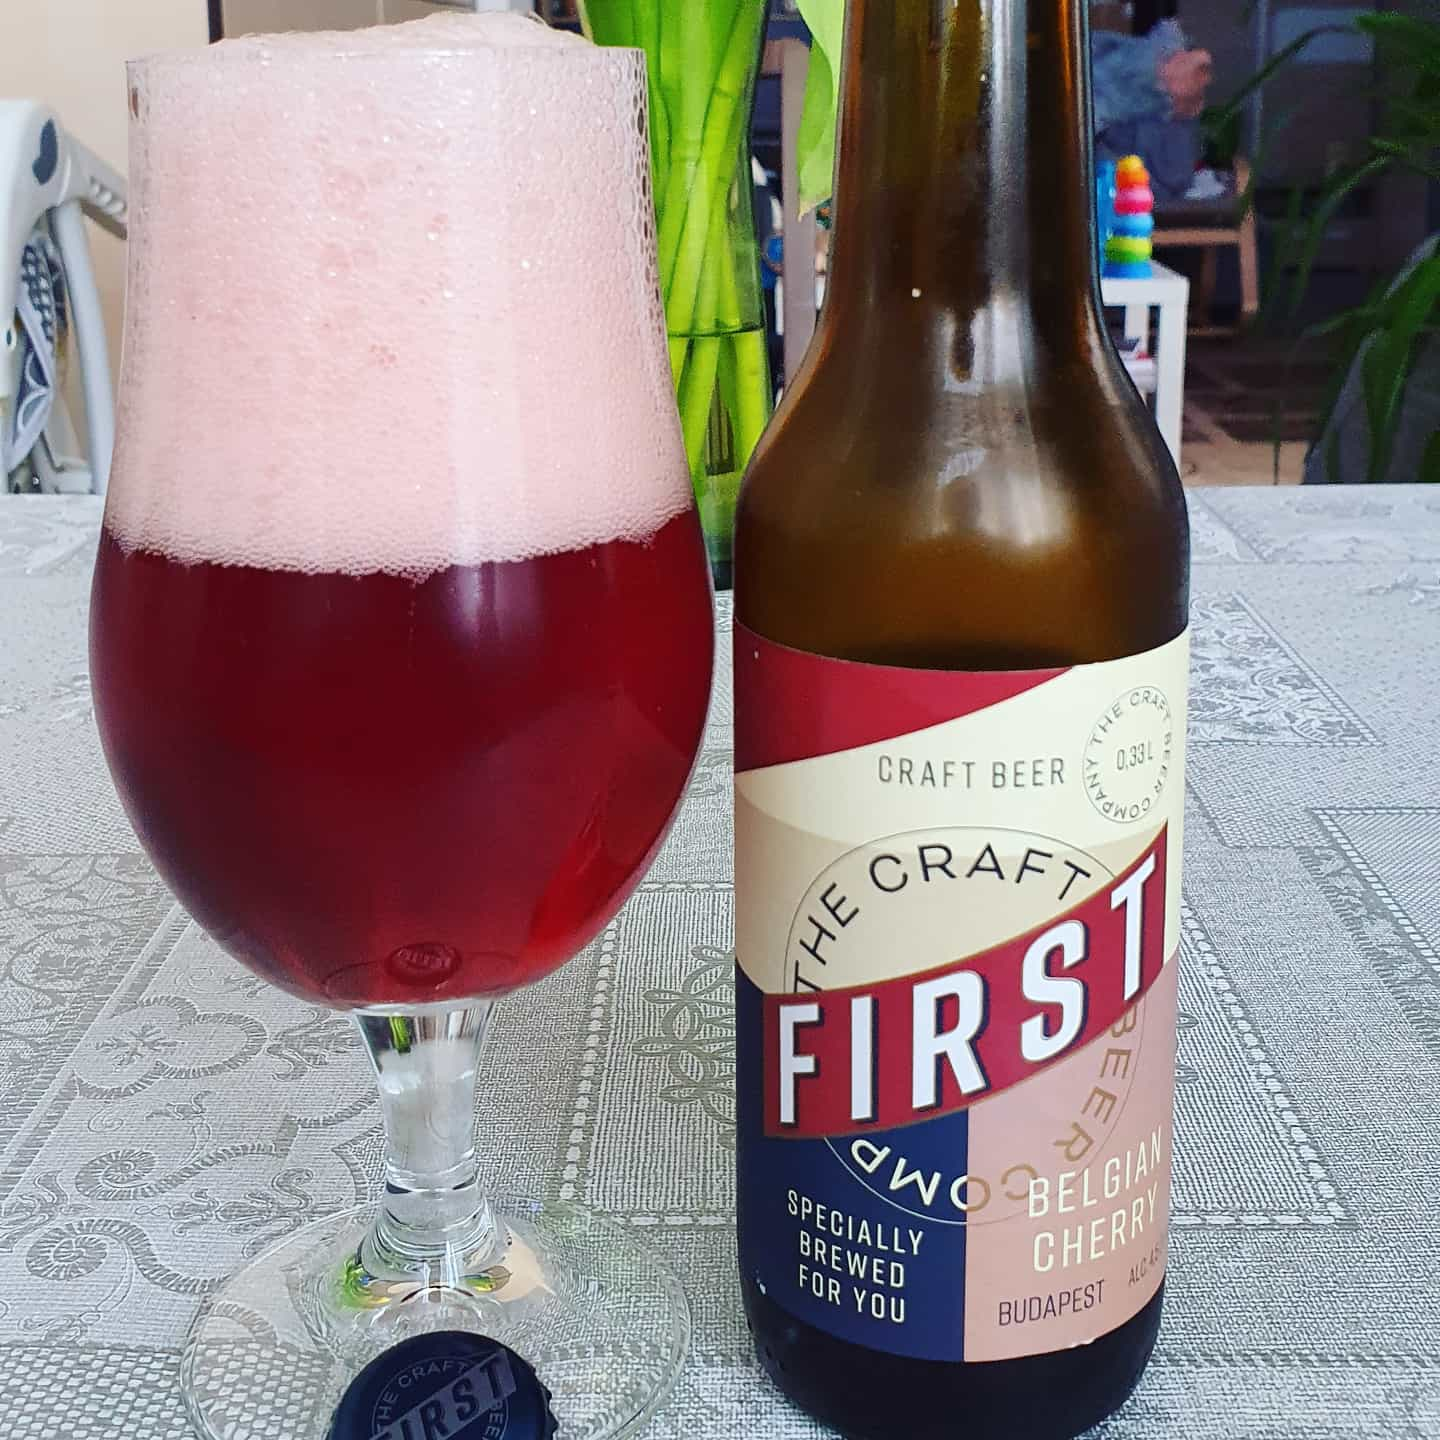 First Belgian Cherry